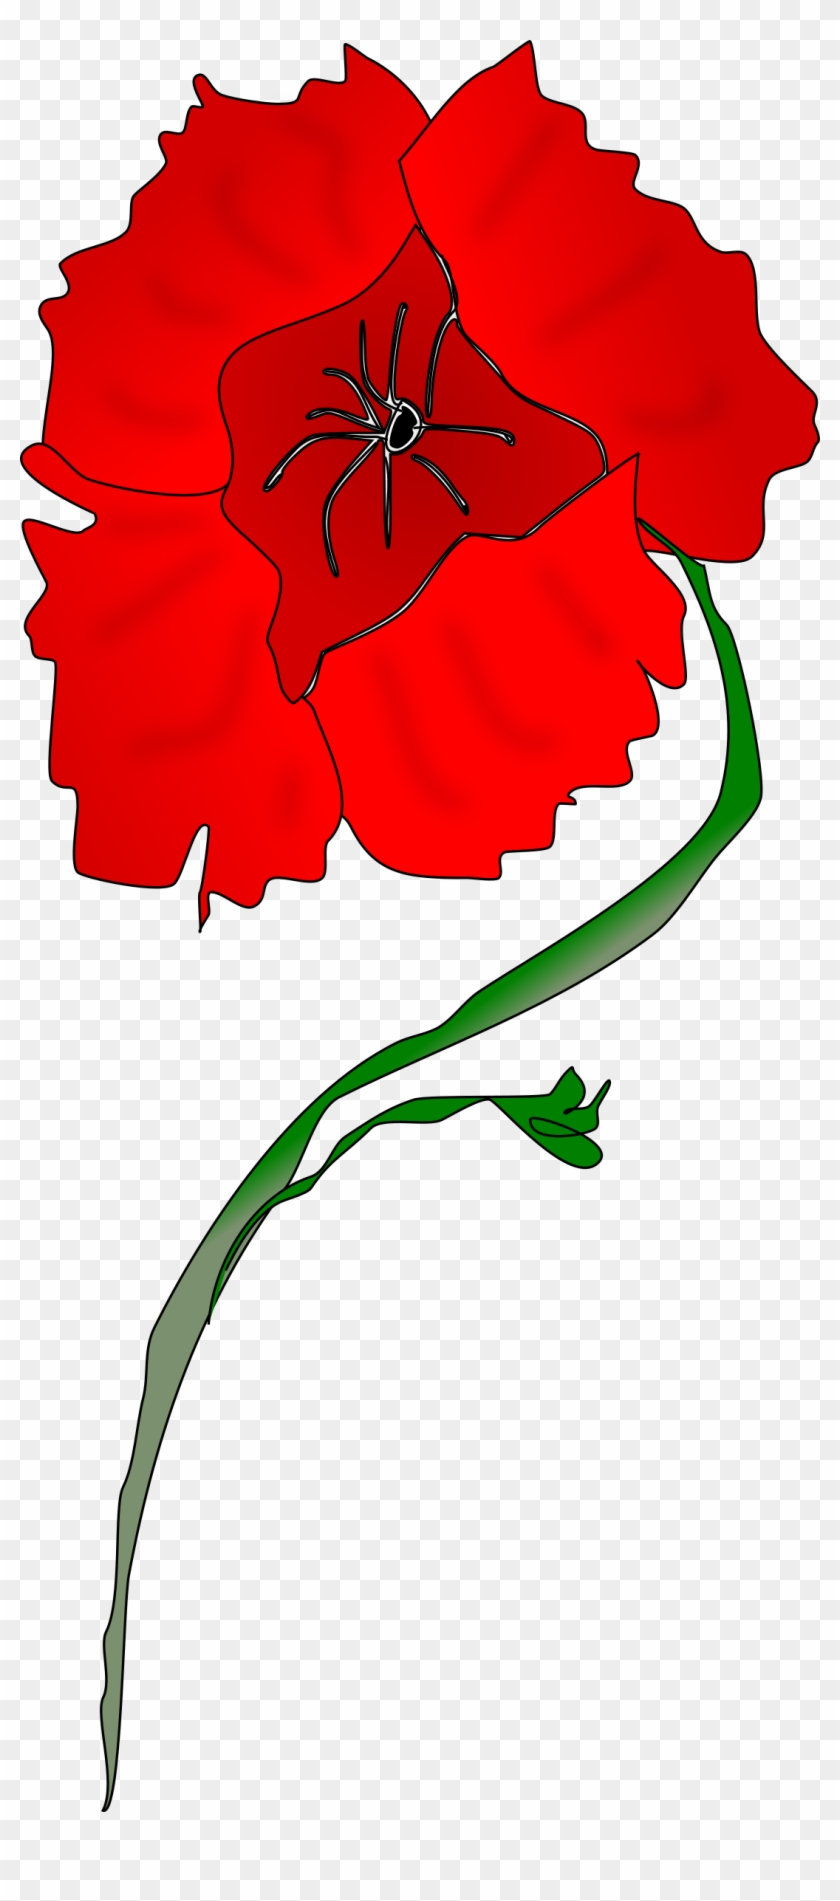 Big Image Poppy Flowers Clipart Free Transparent Png Clipart